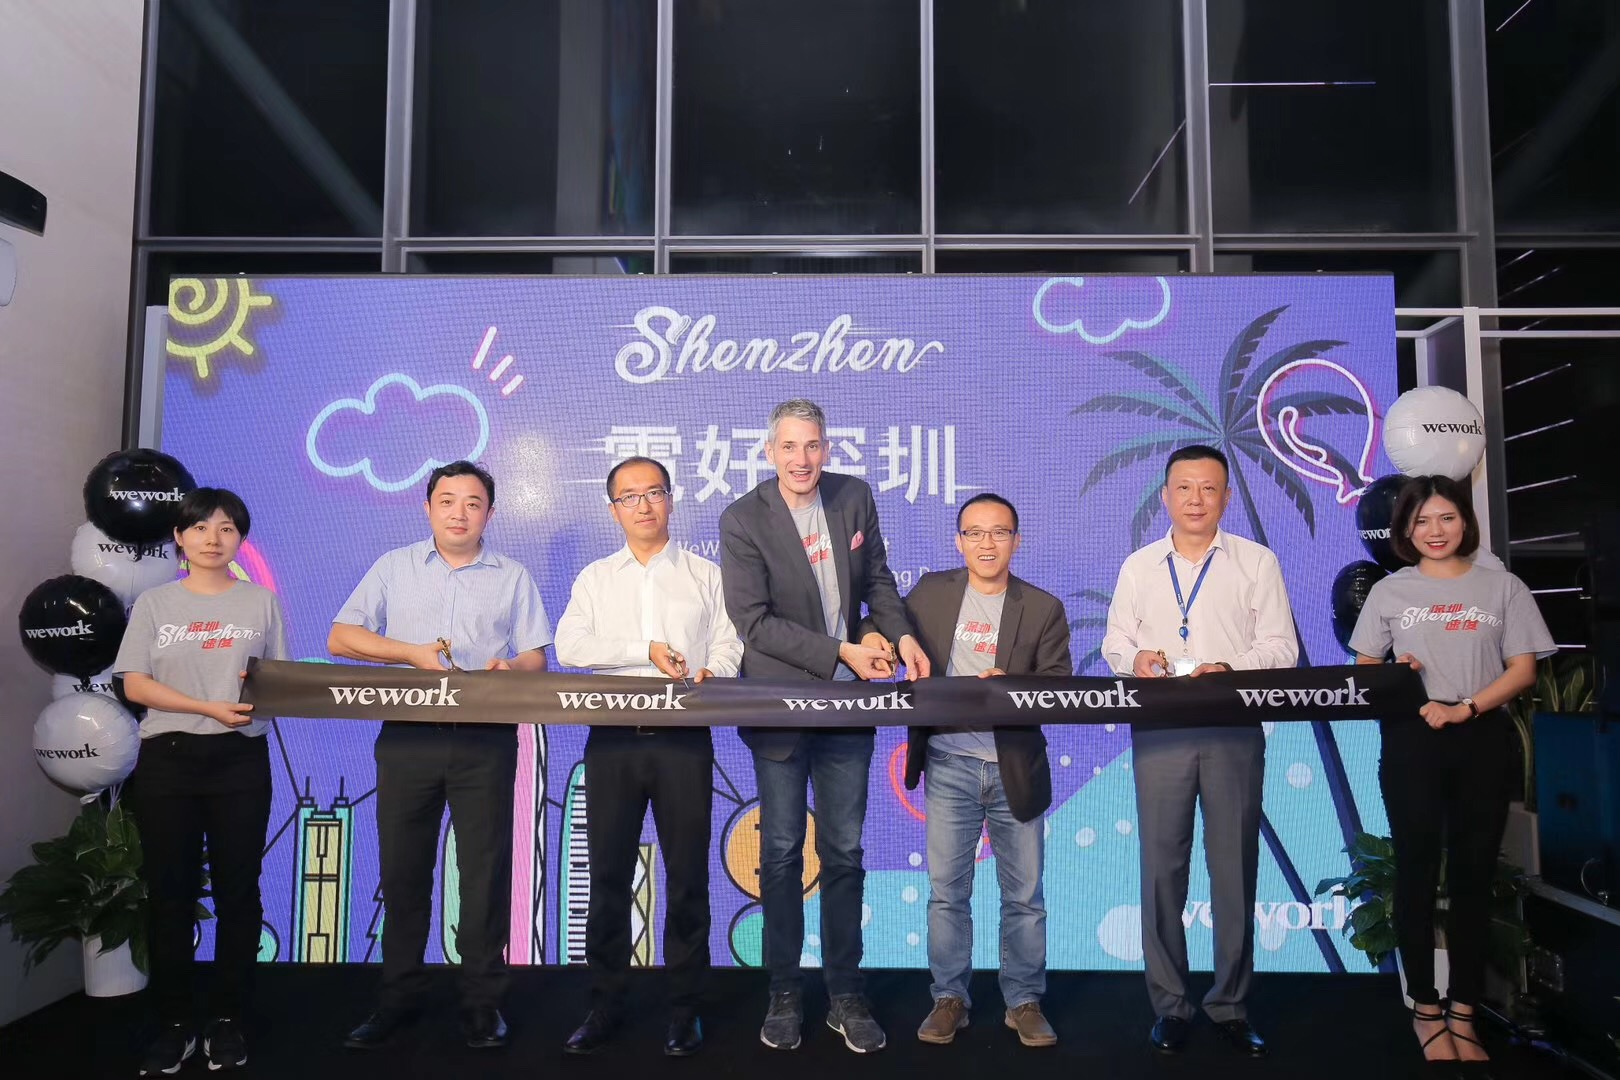 WeWork Shenzhen Opening Party